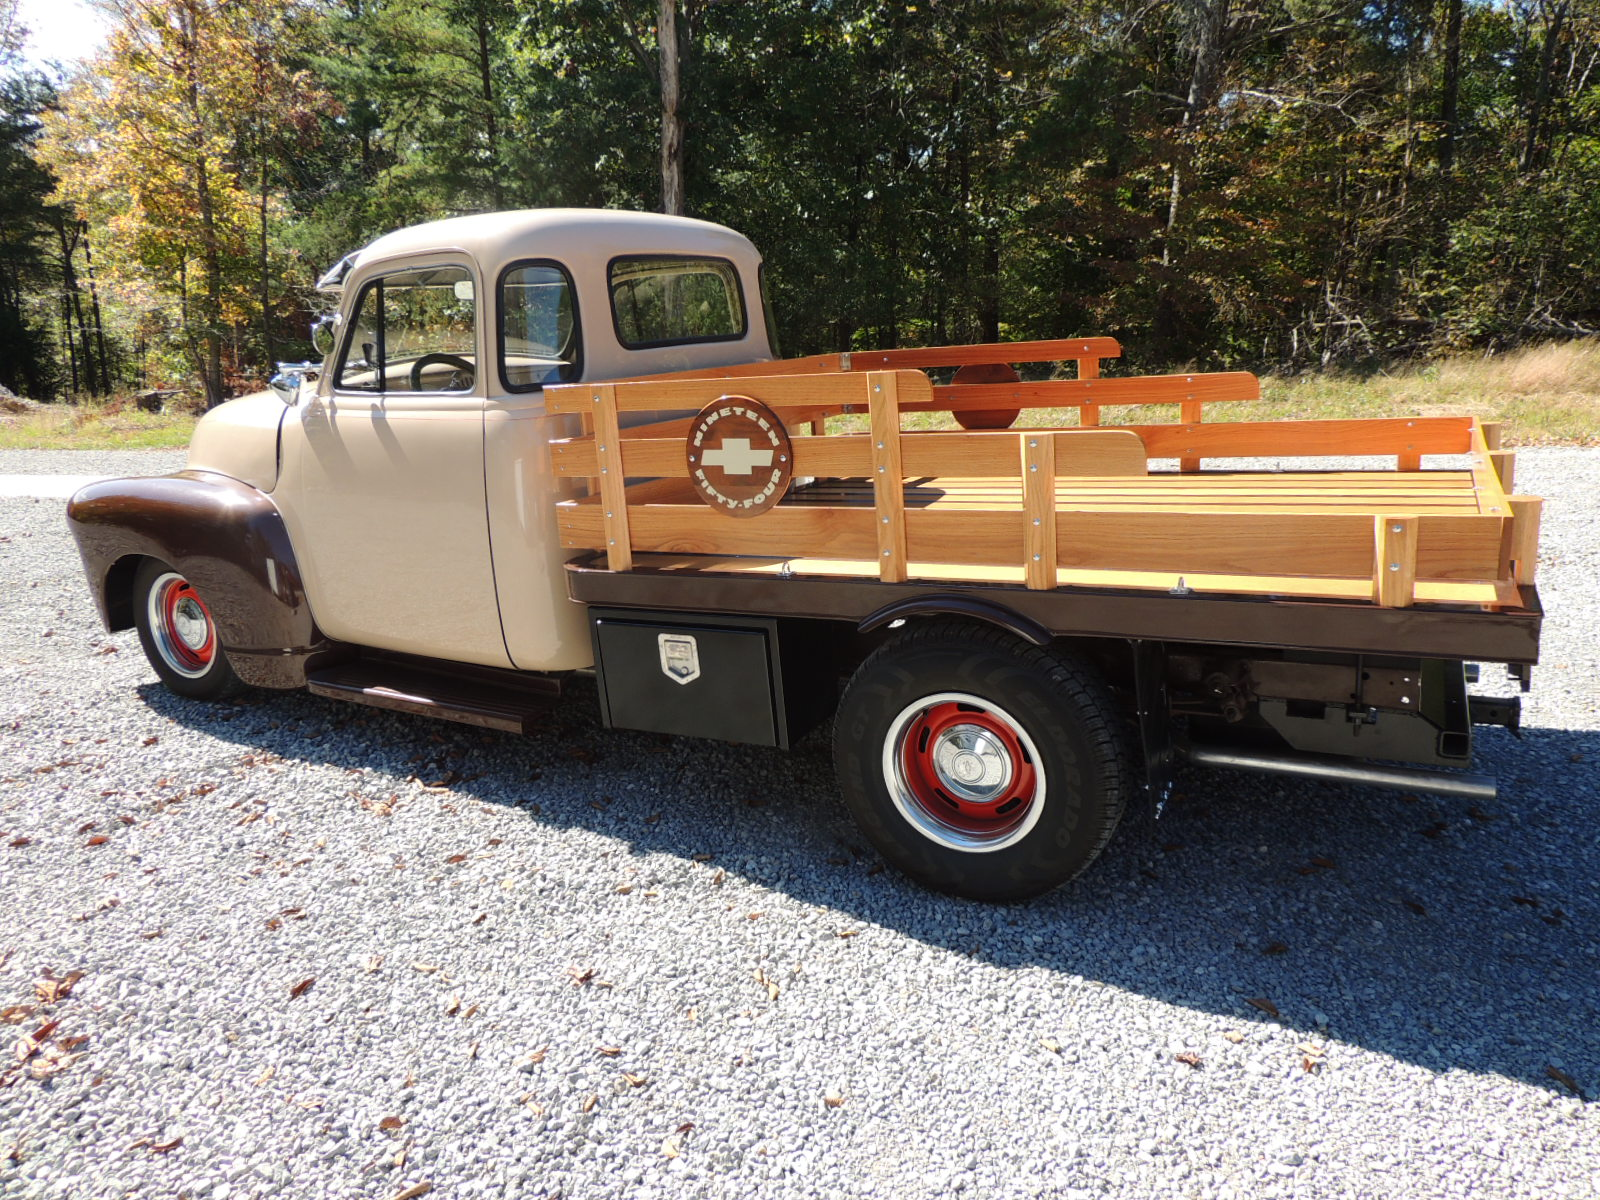 Chevrolet Flatbed Trucks Wiring Diagrams 1954 Chevy Truck 4x4 For Sale The H A M B Rh Jalopyjournal Com In Texas